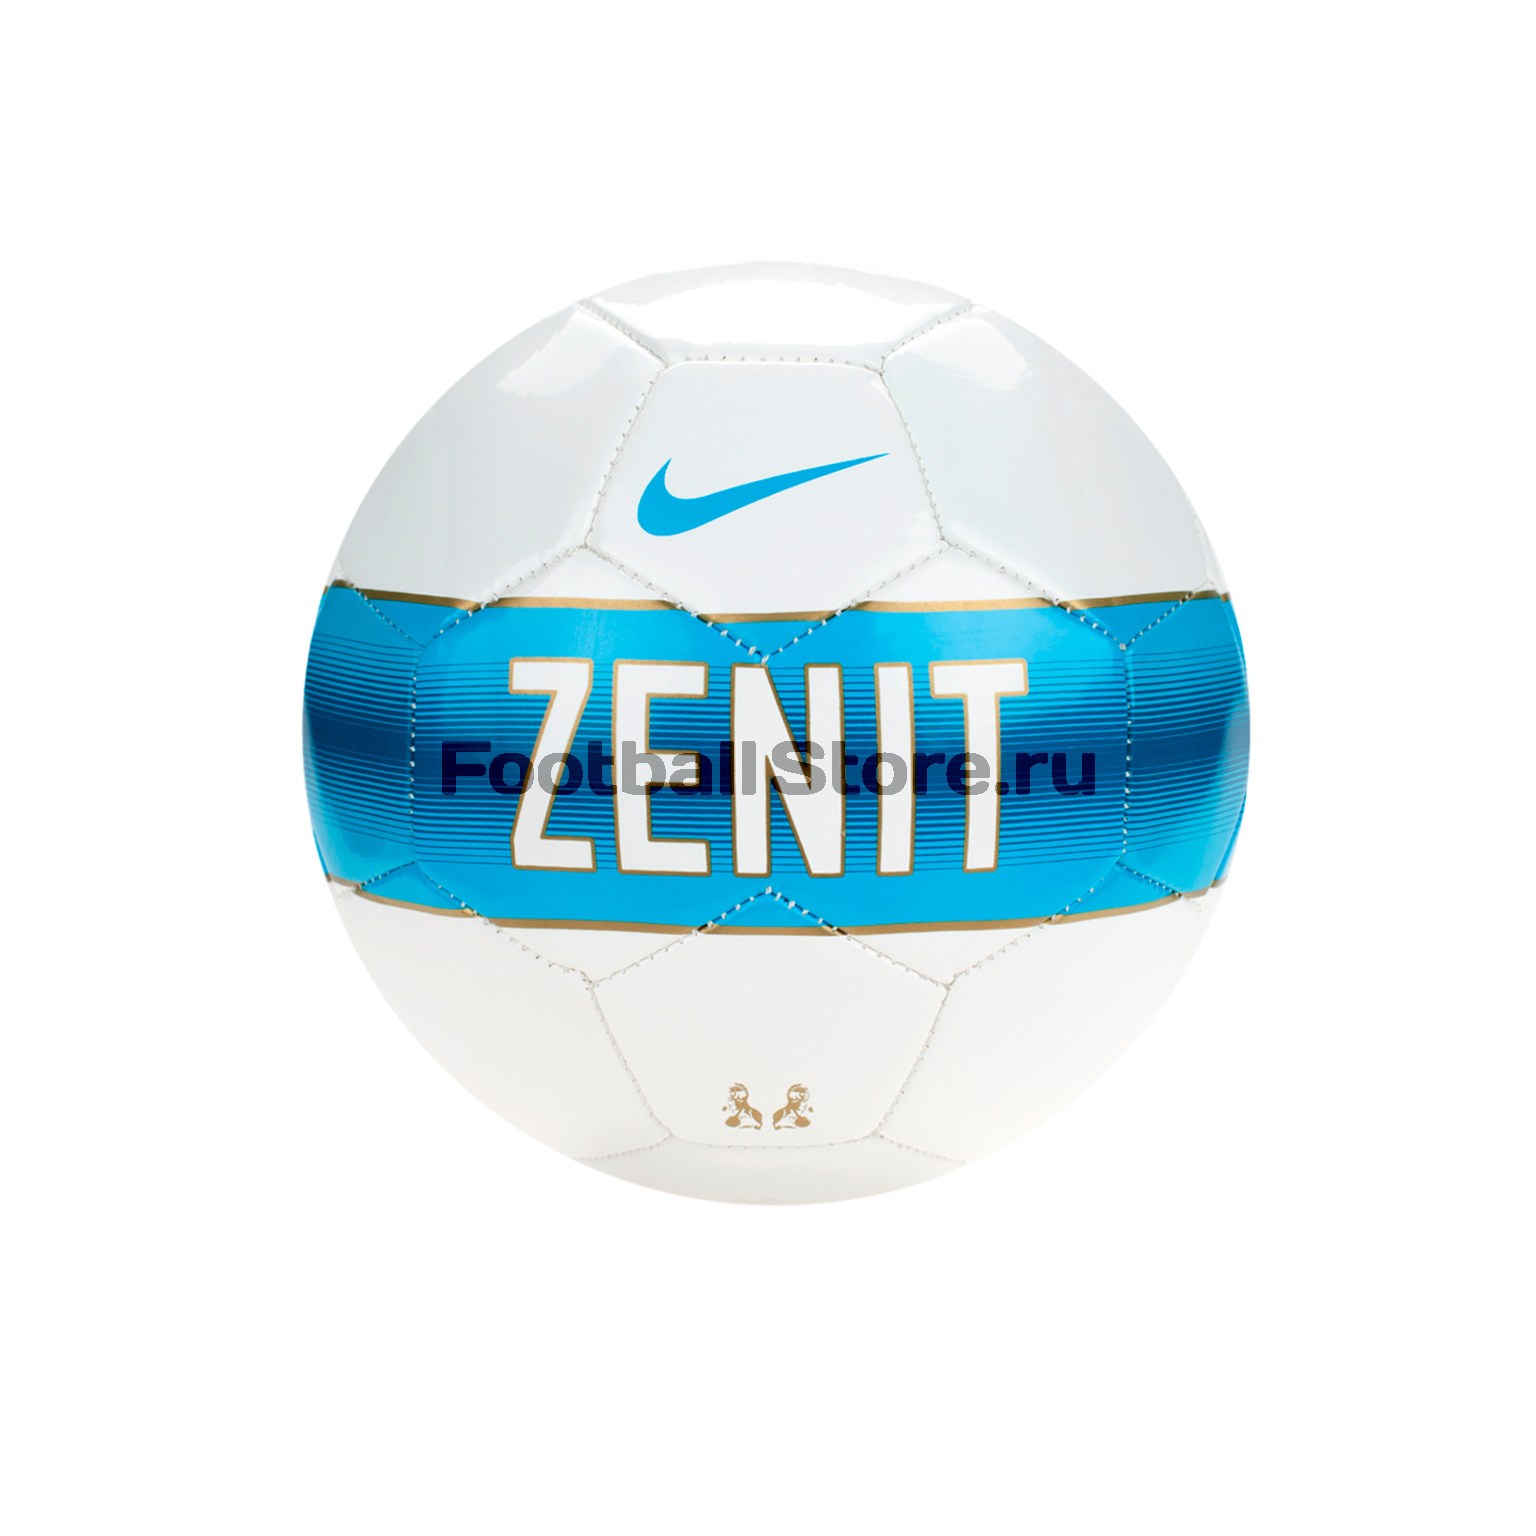 Zenit Nike Мяч футбольный Nike Zenit Supporters Ball SC2254-149